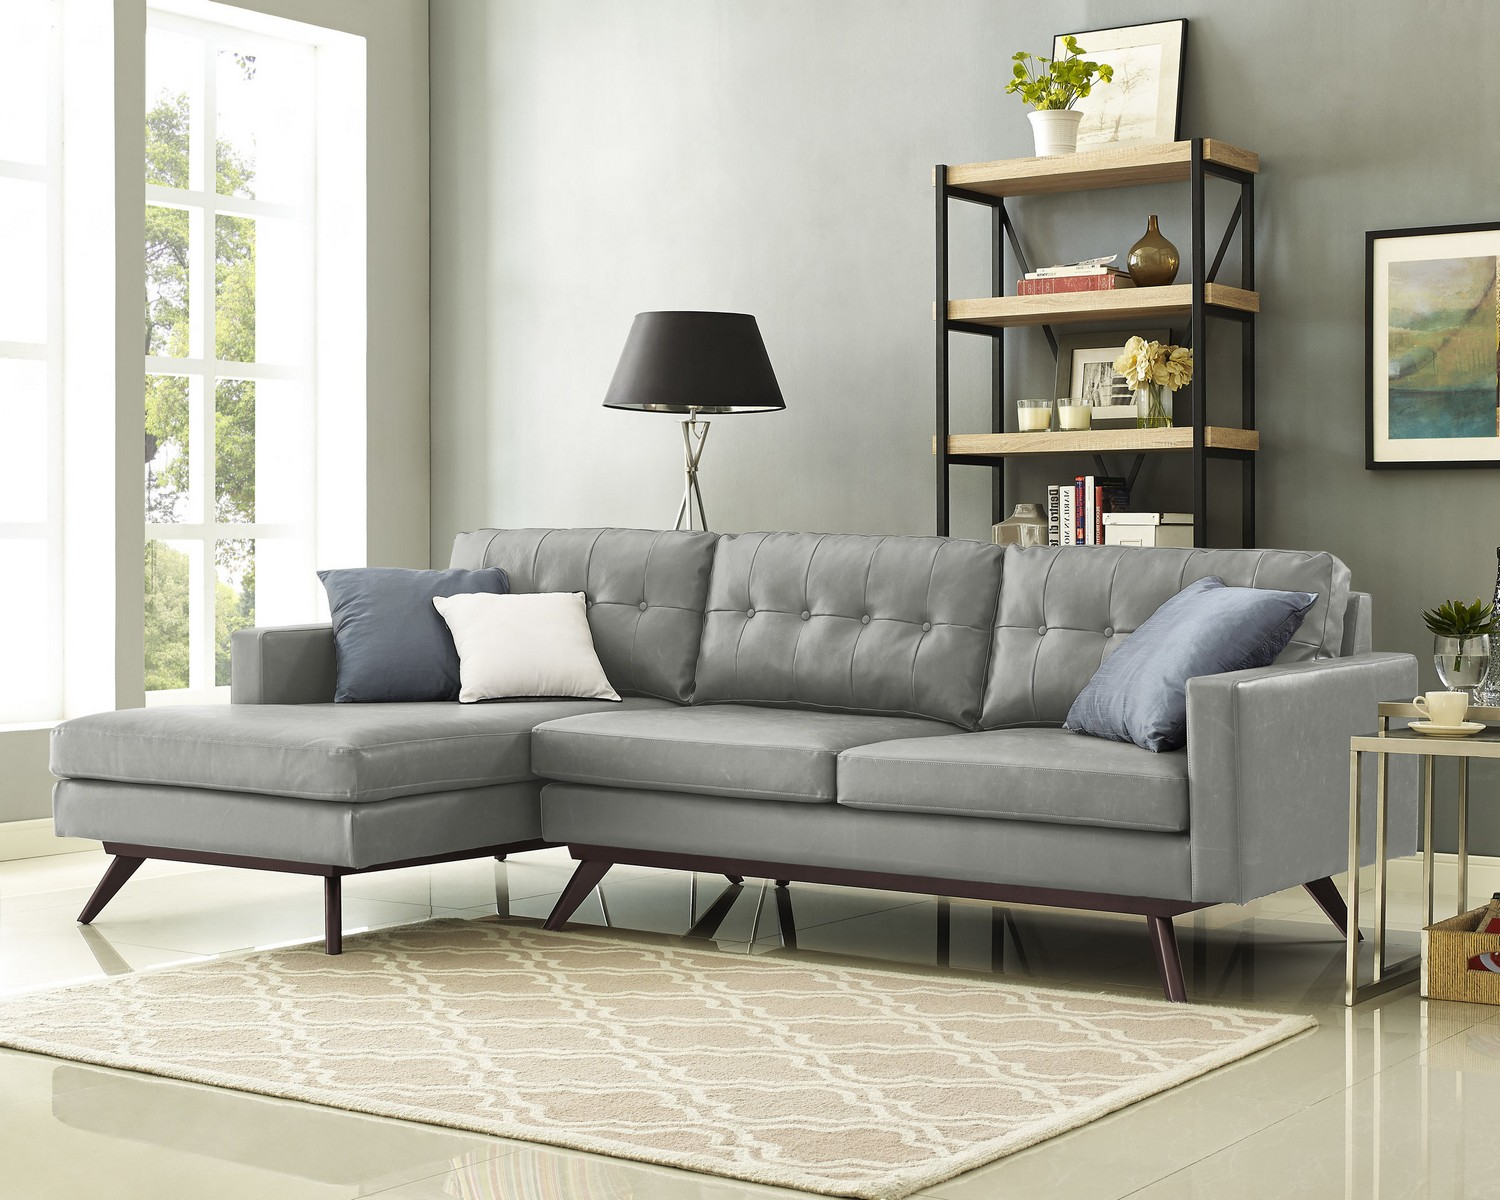 TOV Furniture Blake Antique Grey LAF Sectional